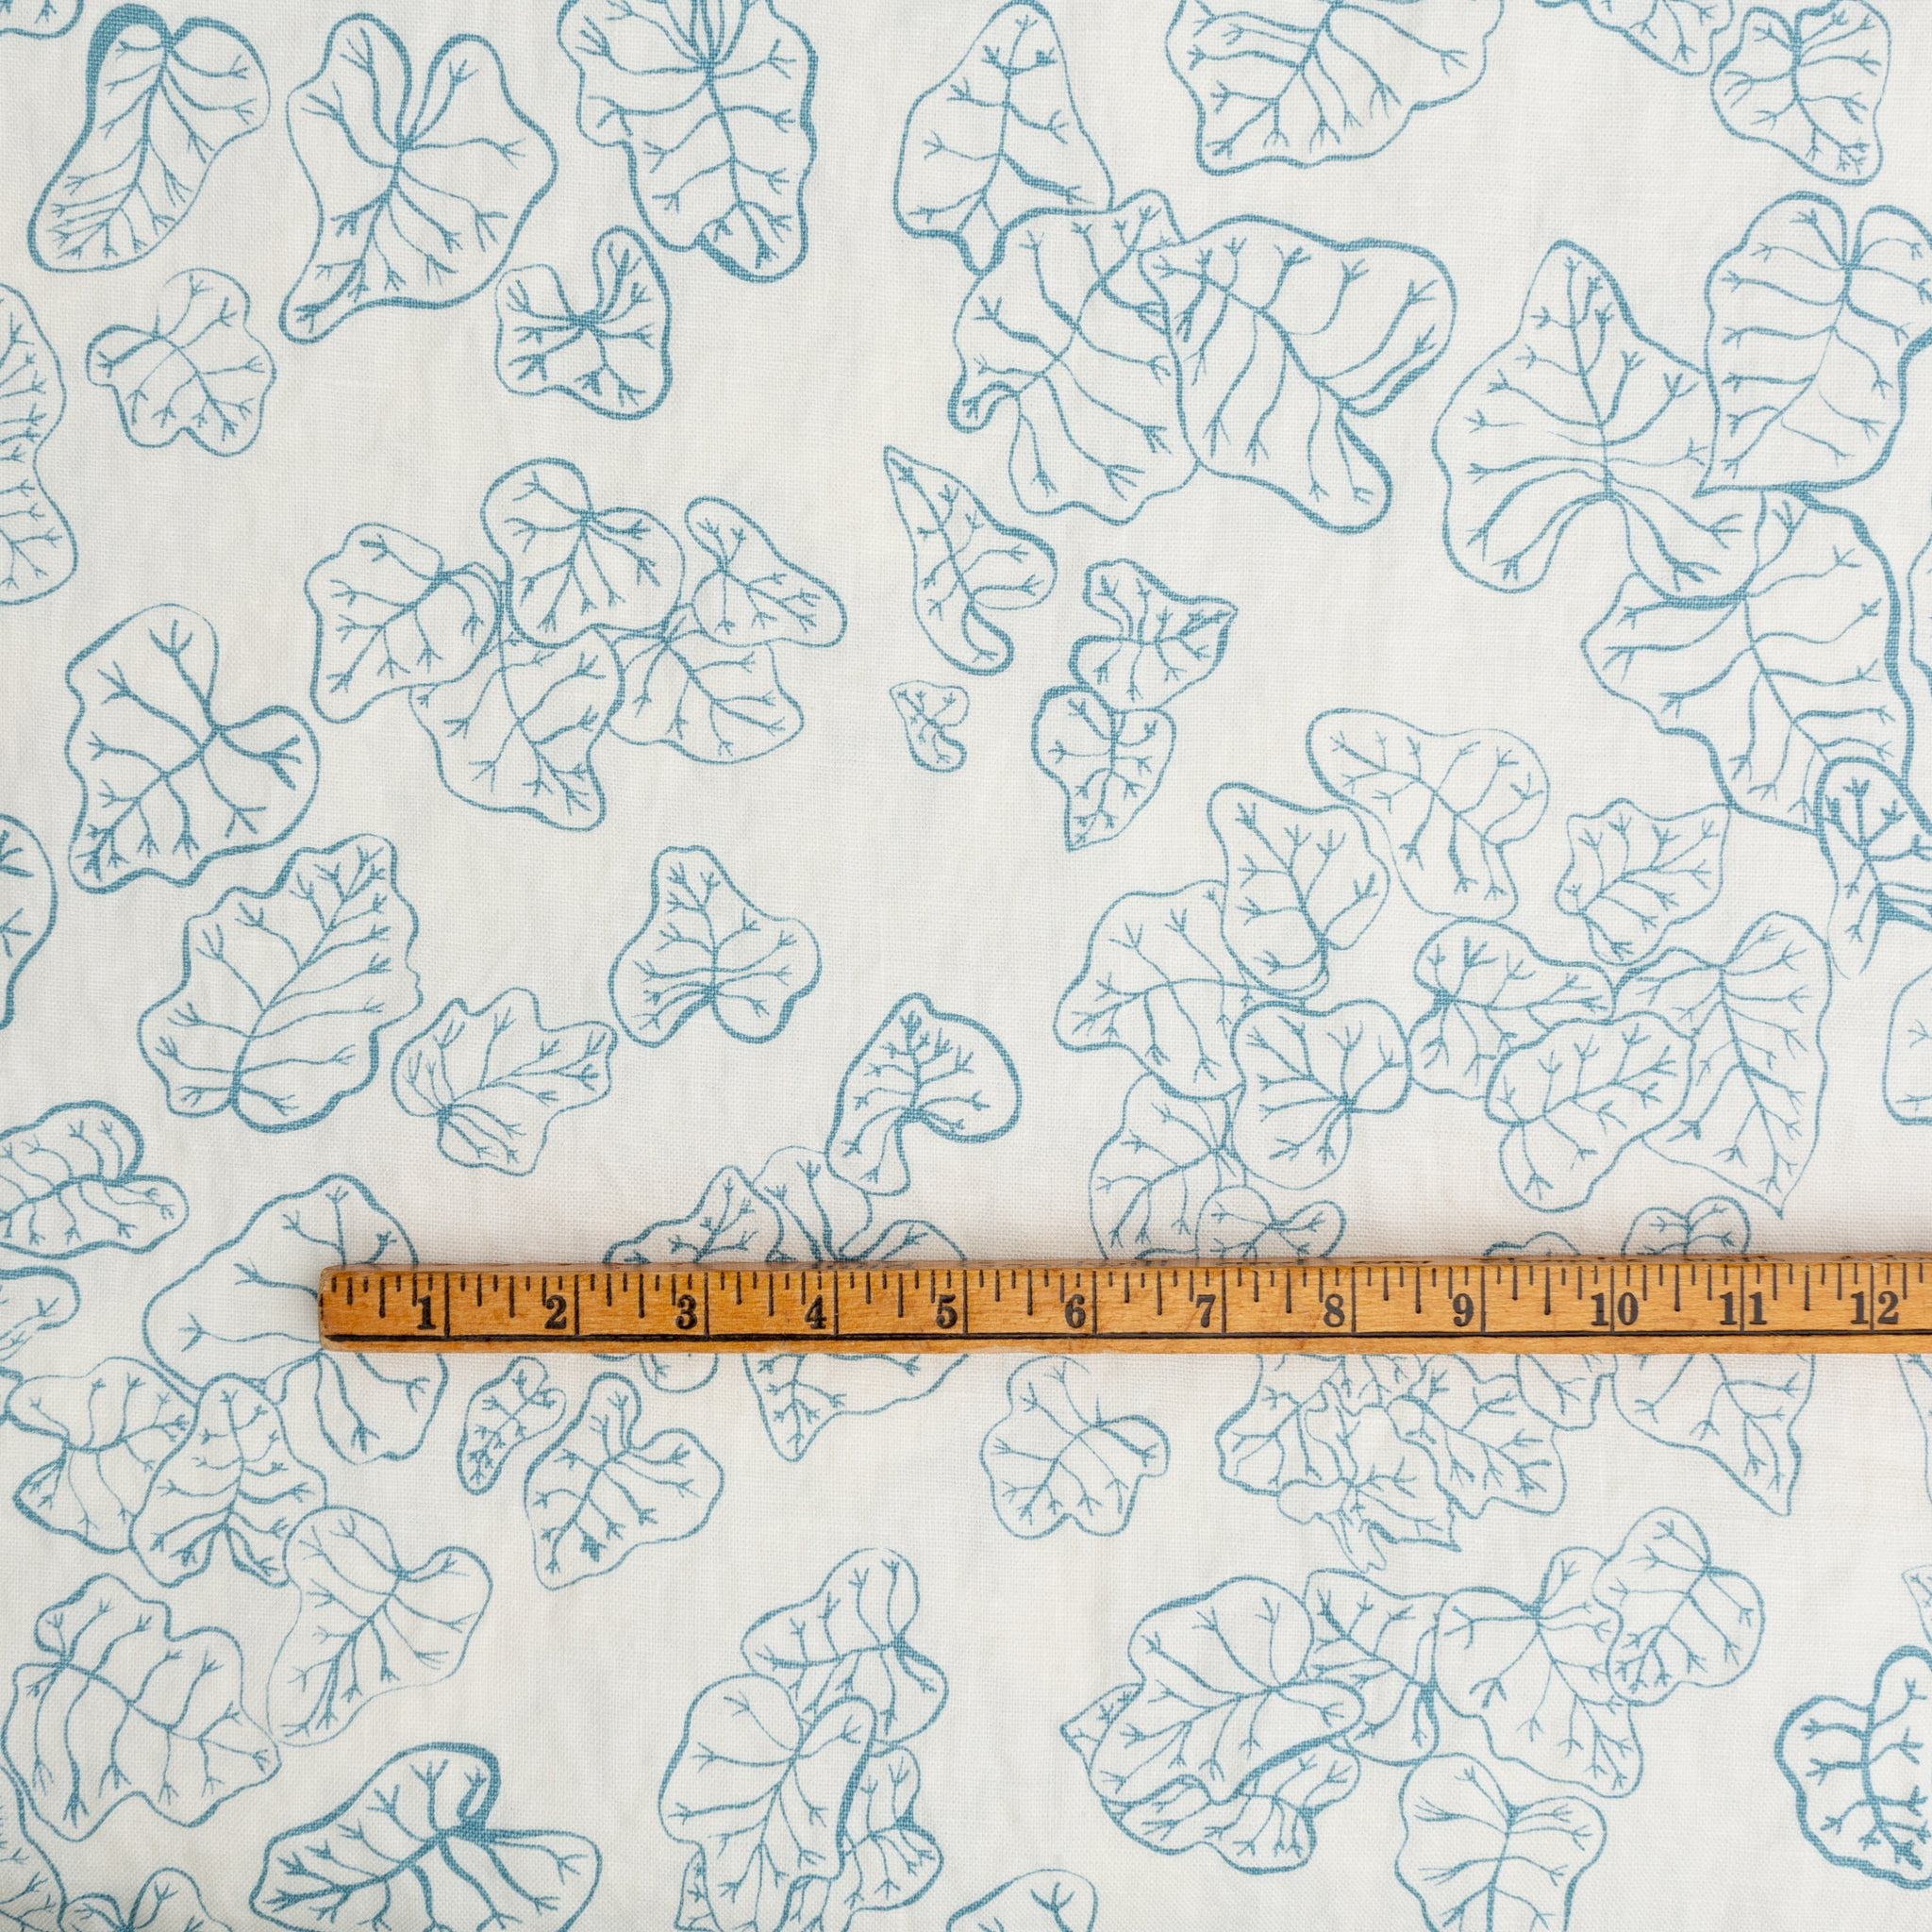 Screen printed fabric yardage with heuchera leaves with ruler for scale